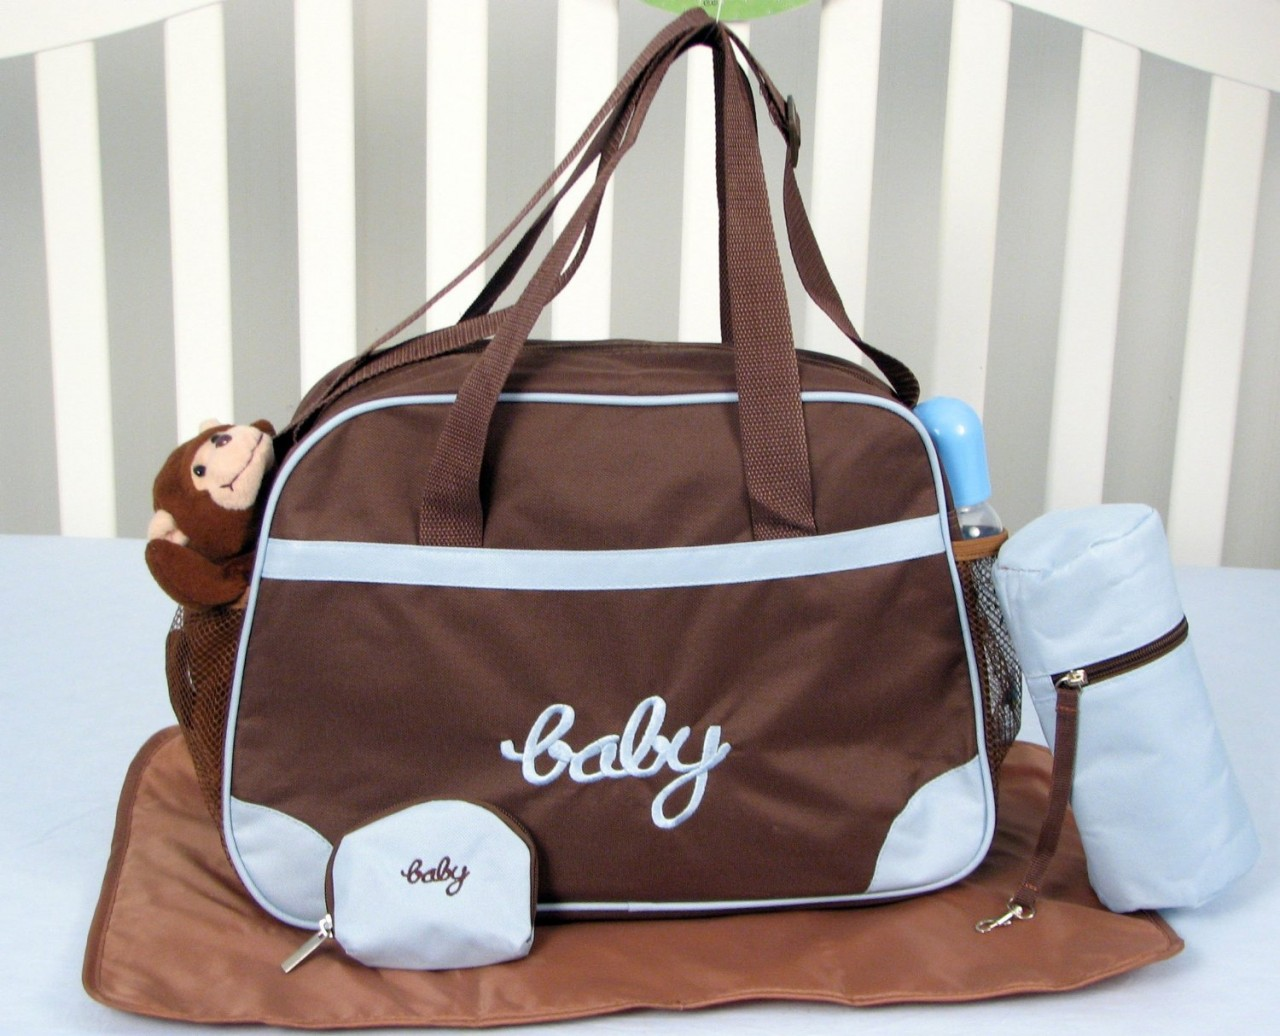 KIT DE BERCO SOHO NEW BLUE MINKY DOT CHENILLE BABY 13 PCS INCLUDED DIAPER BAG WITH CHAGING PAD & BOTTLE CASE